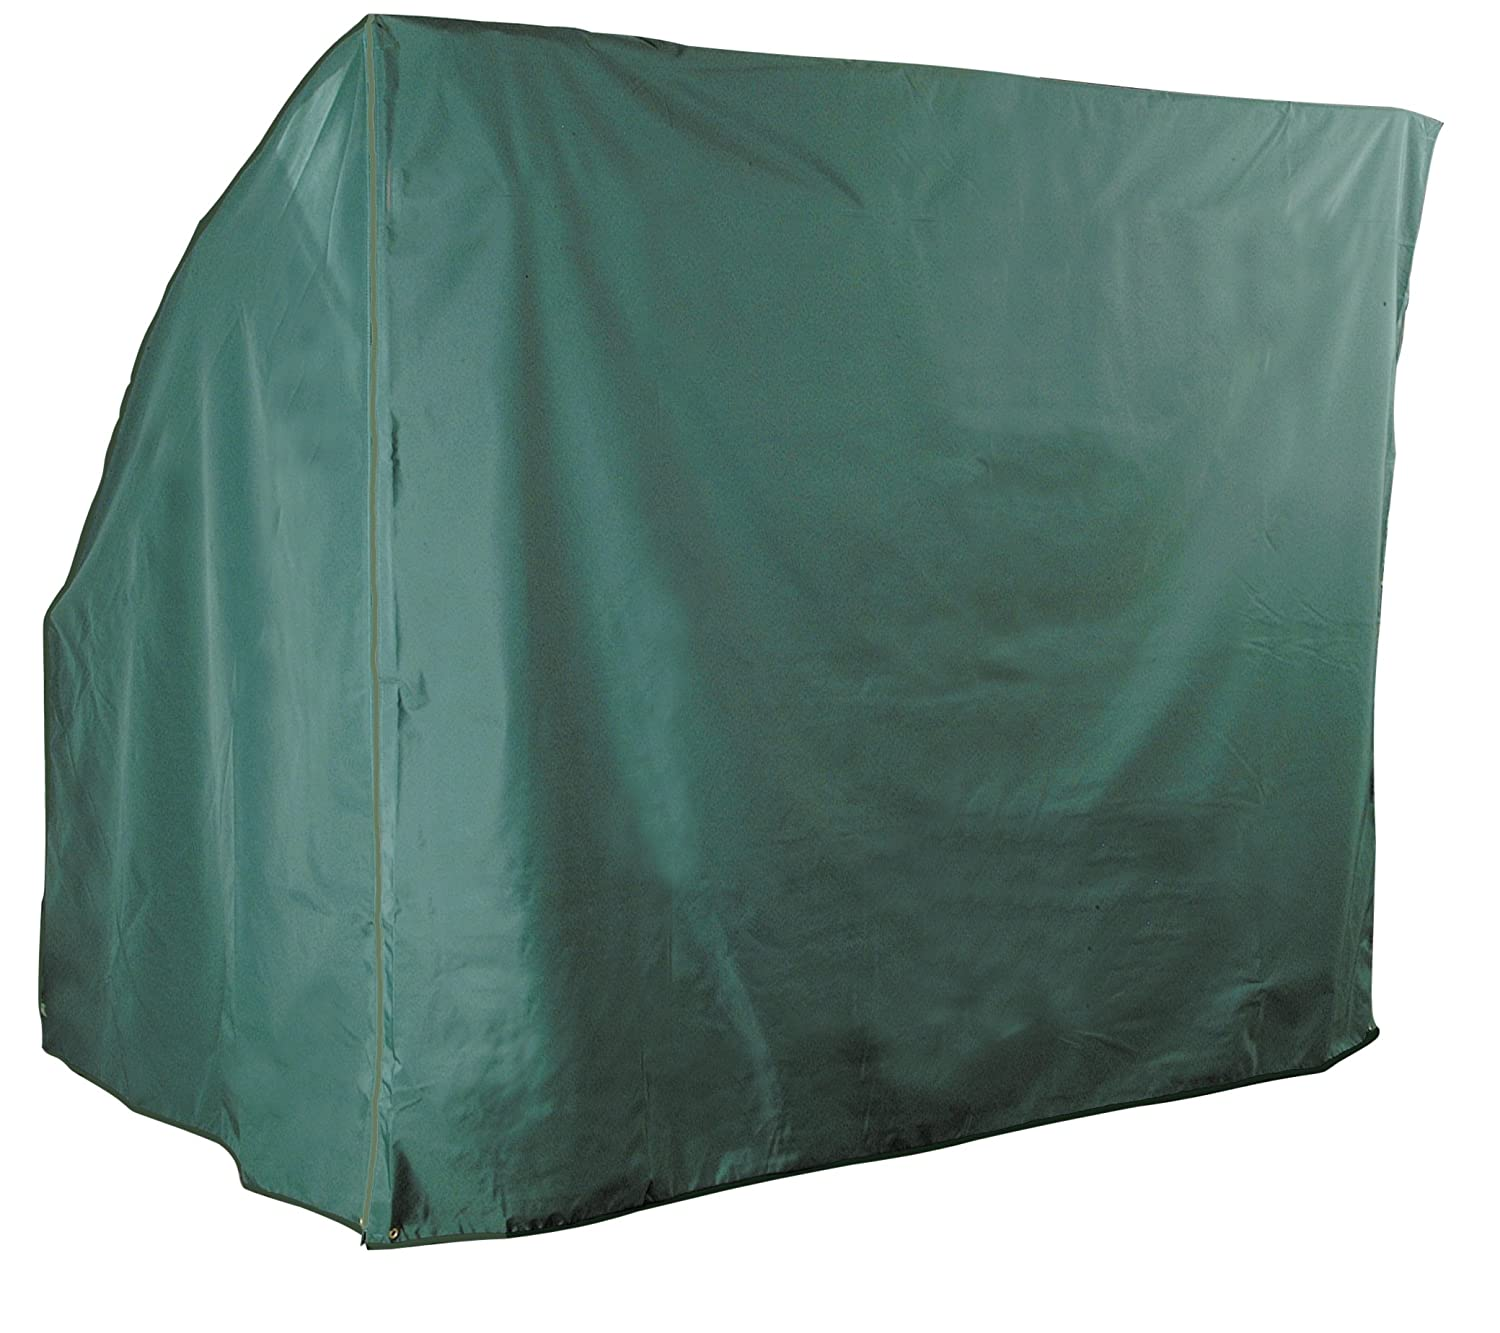 Medium image of amazon     bosmere c501 waterproof swing seat cover 68   x 49   x 67   green   patio glider covers   garden  u0026 outdoor